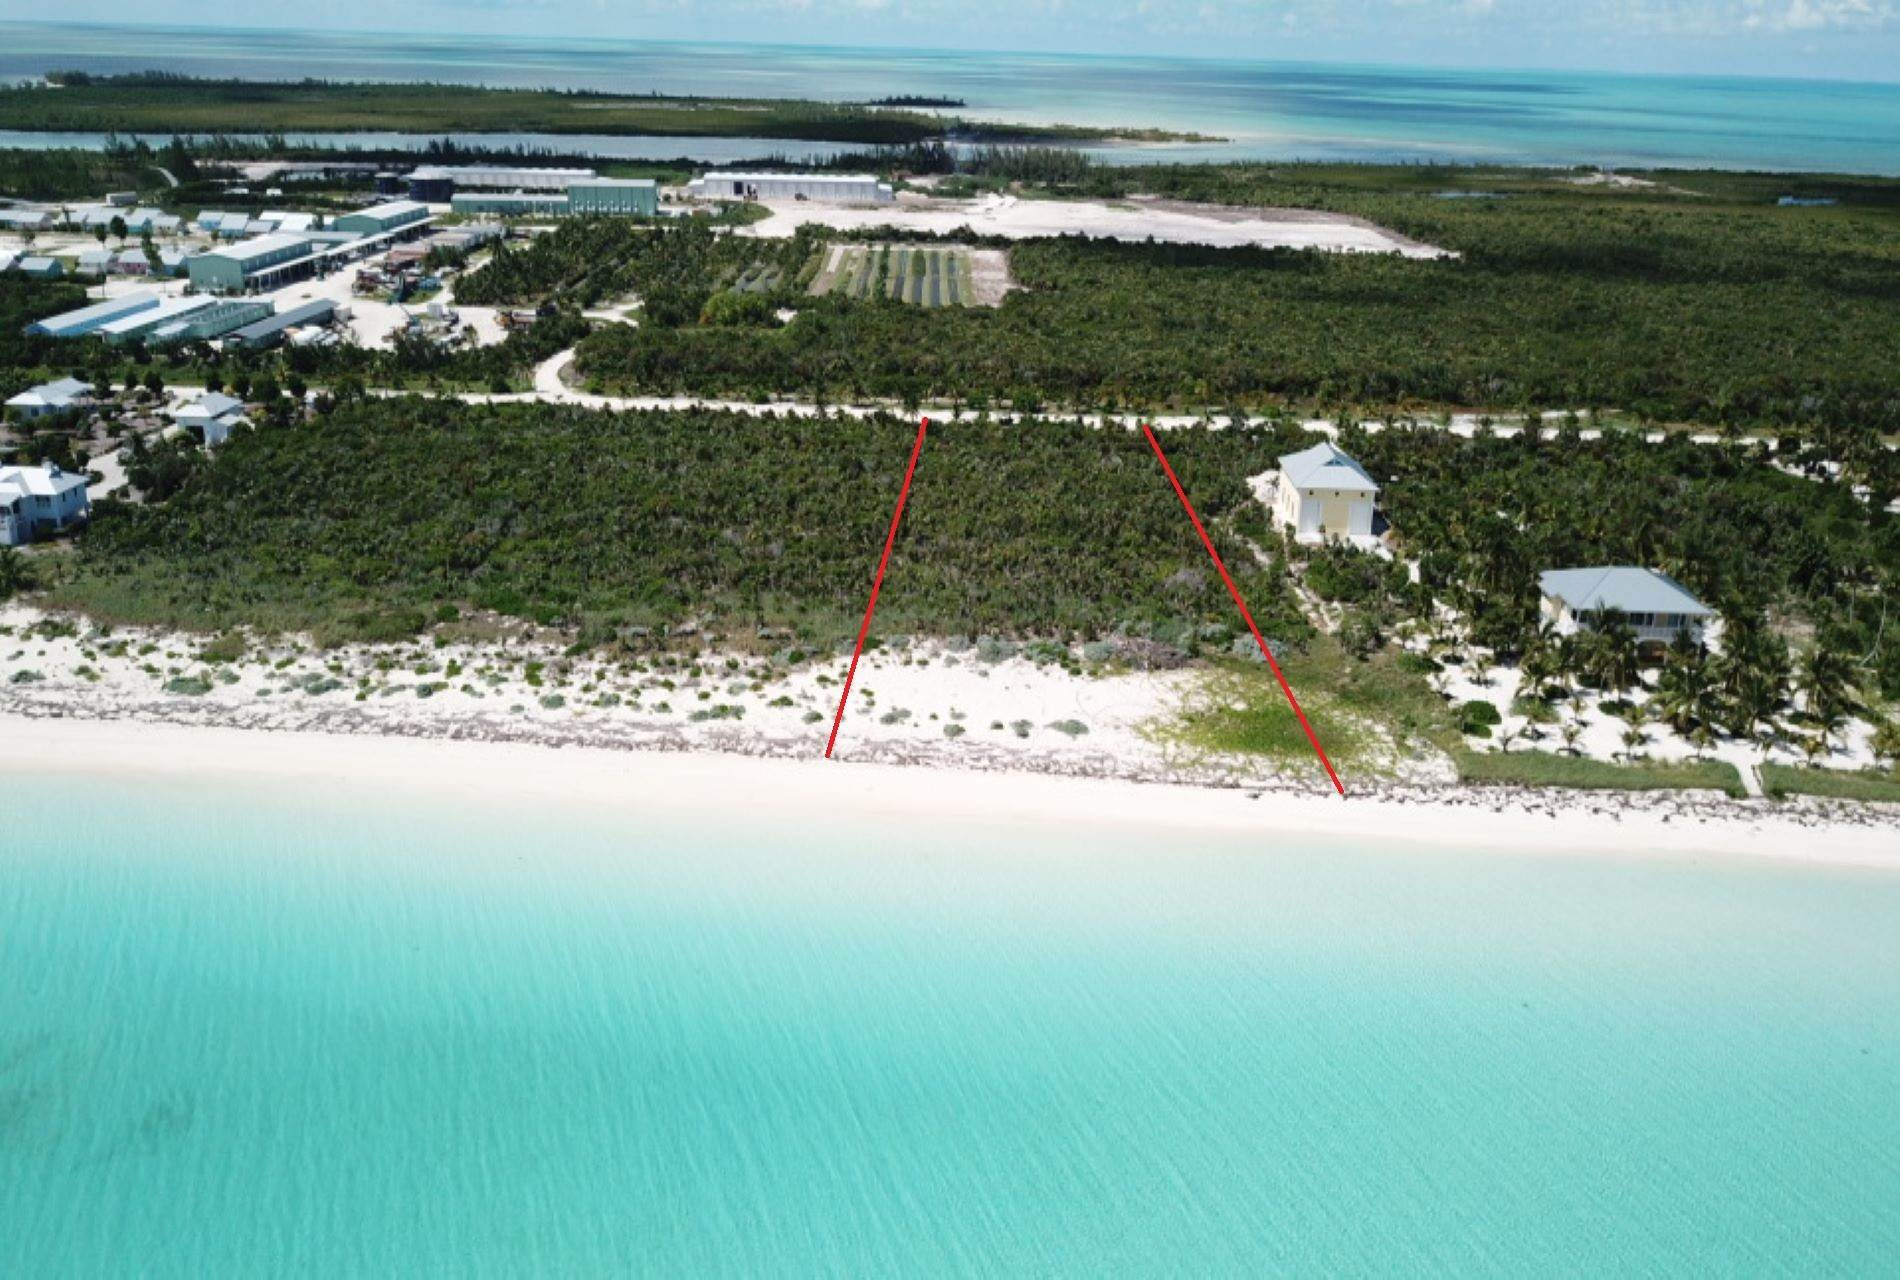 Land for Sale at Beachfront Lot 7 and Dock Slip #113 Chub Cay - MLS 38797 Chub Cay, Berry Islands, Bahamas